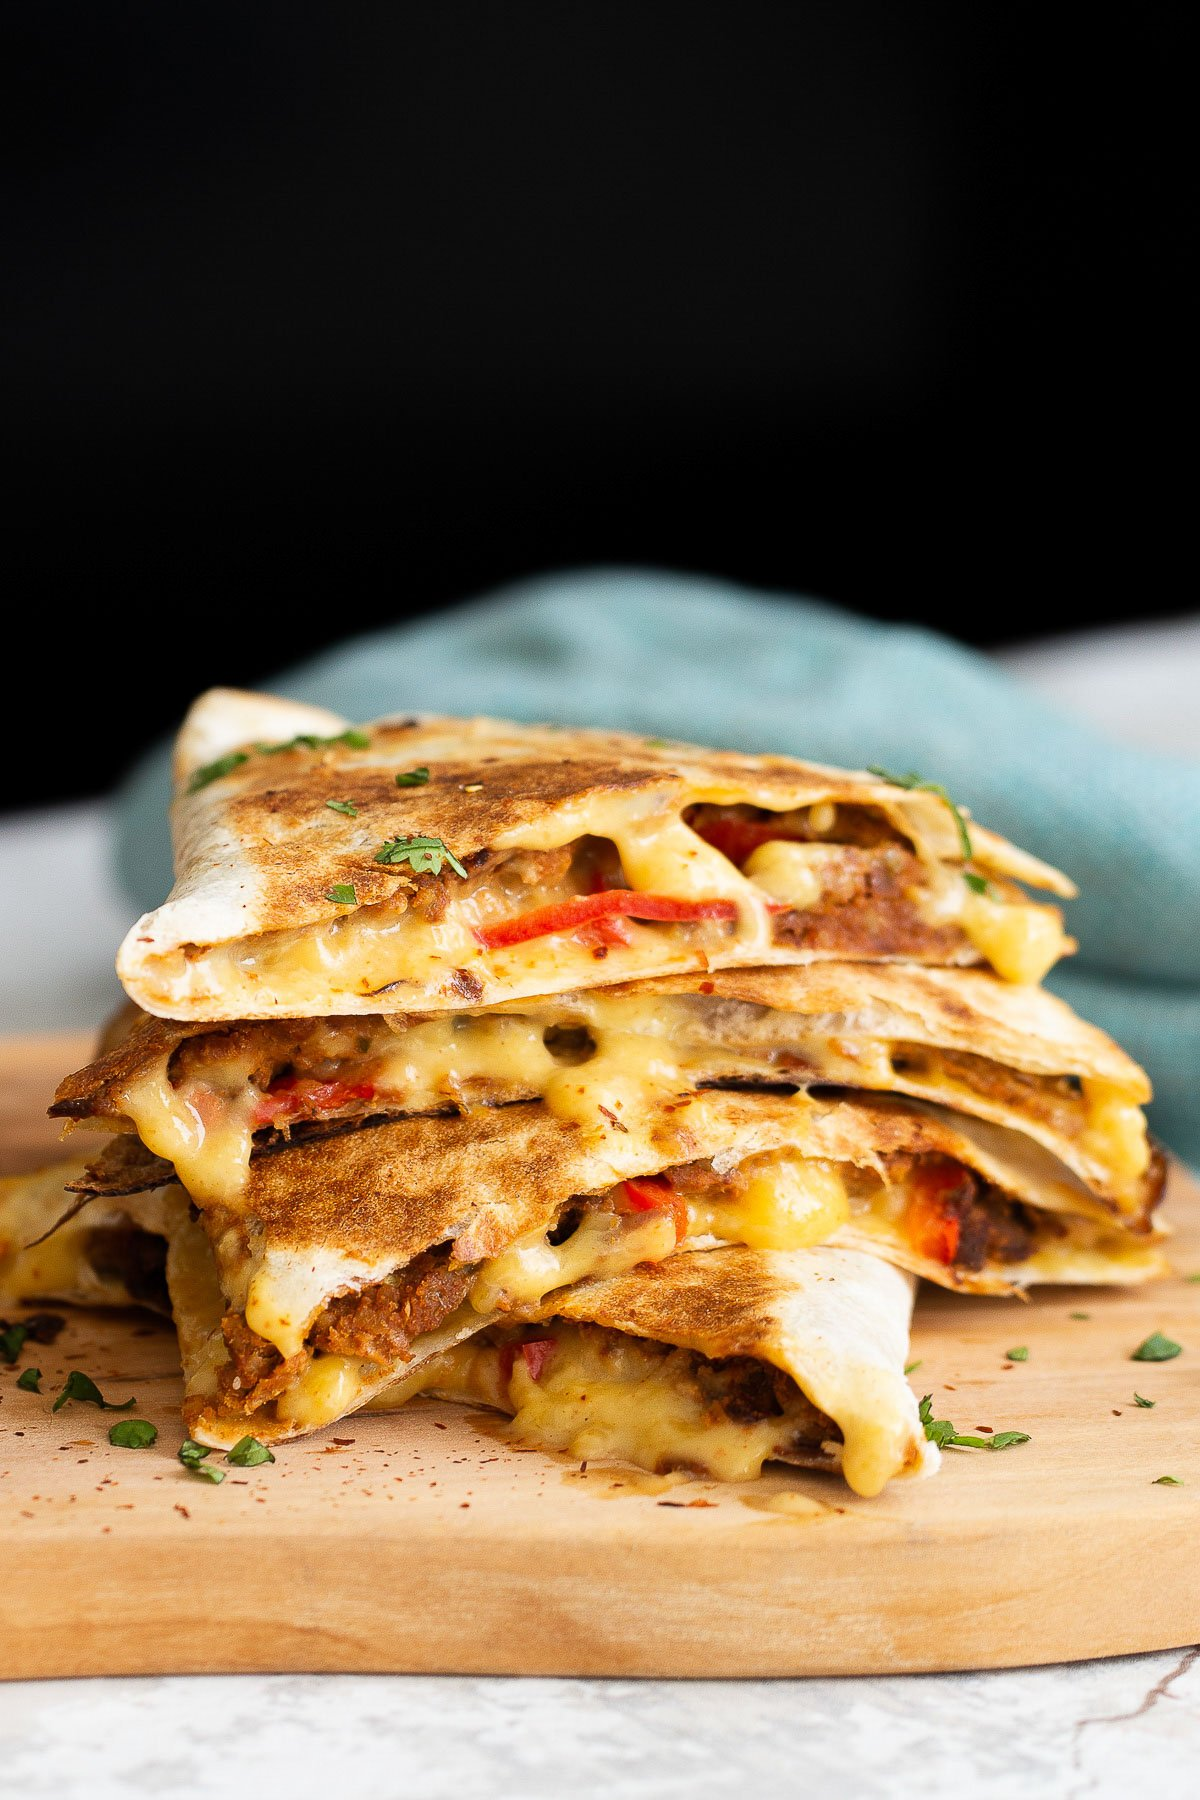 close-up side view of a stack of cut vegan walnut meat quesadillas